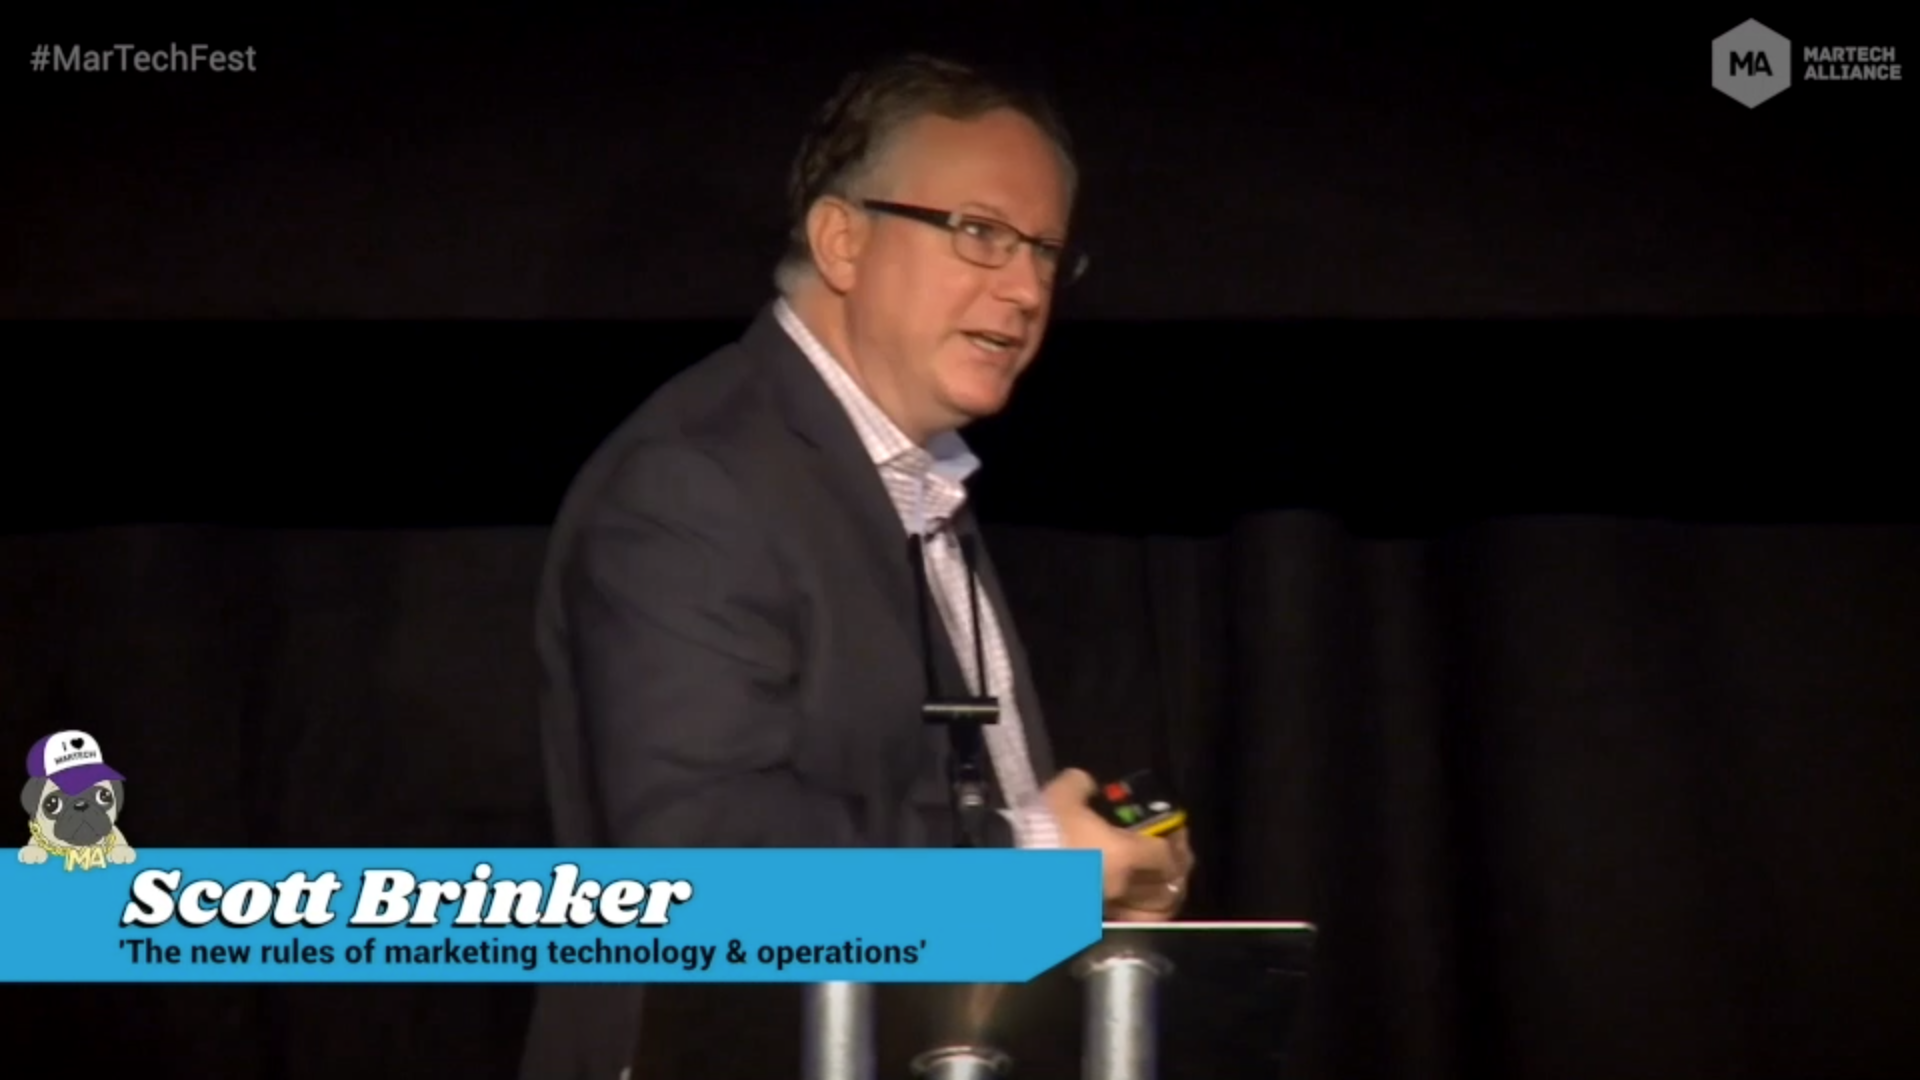 Scott Brinker presentation at MarTechFest 2018_1